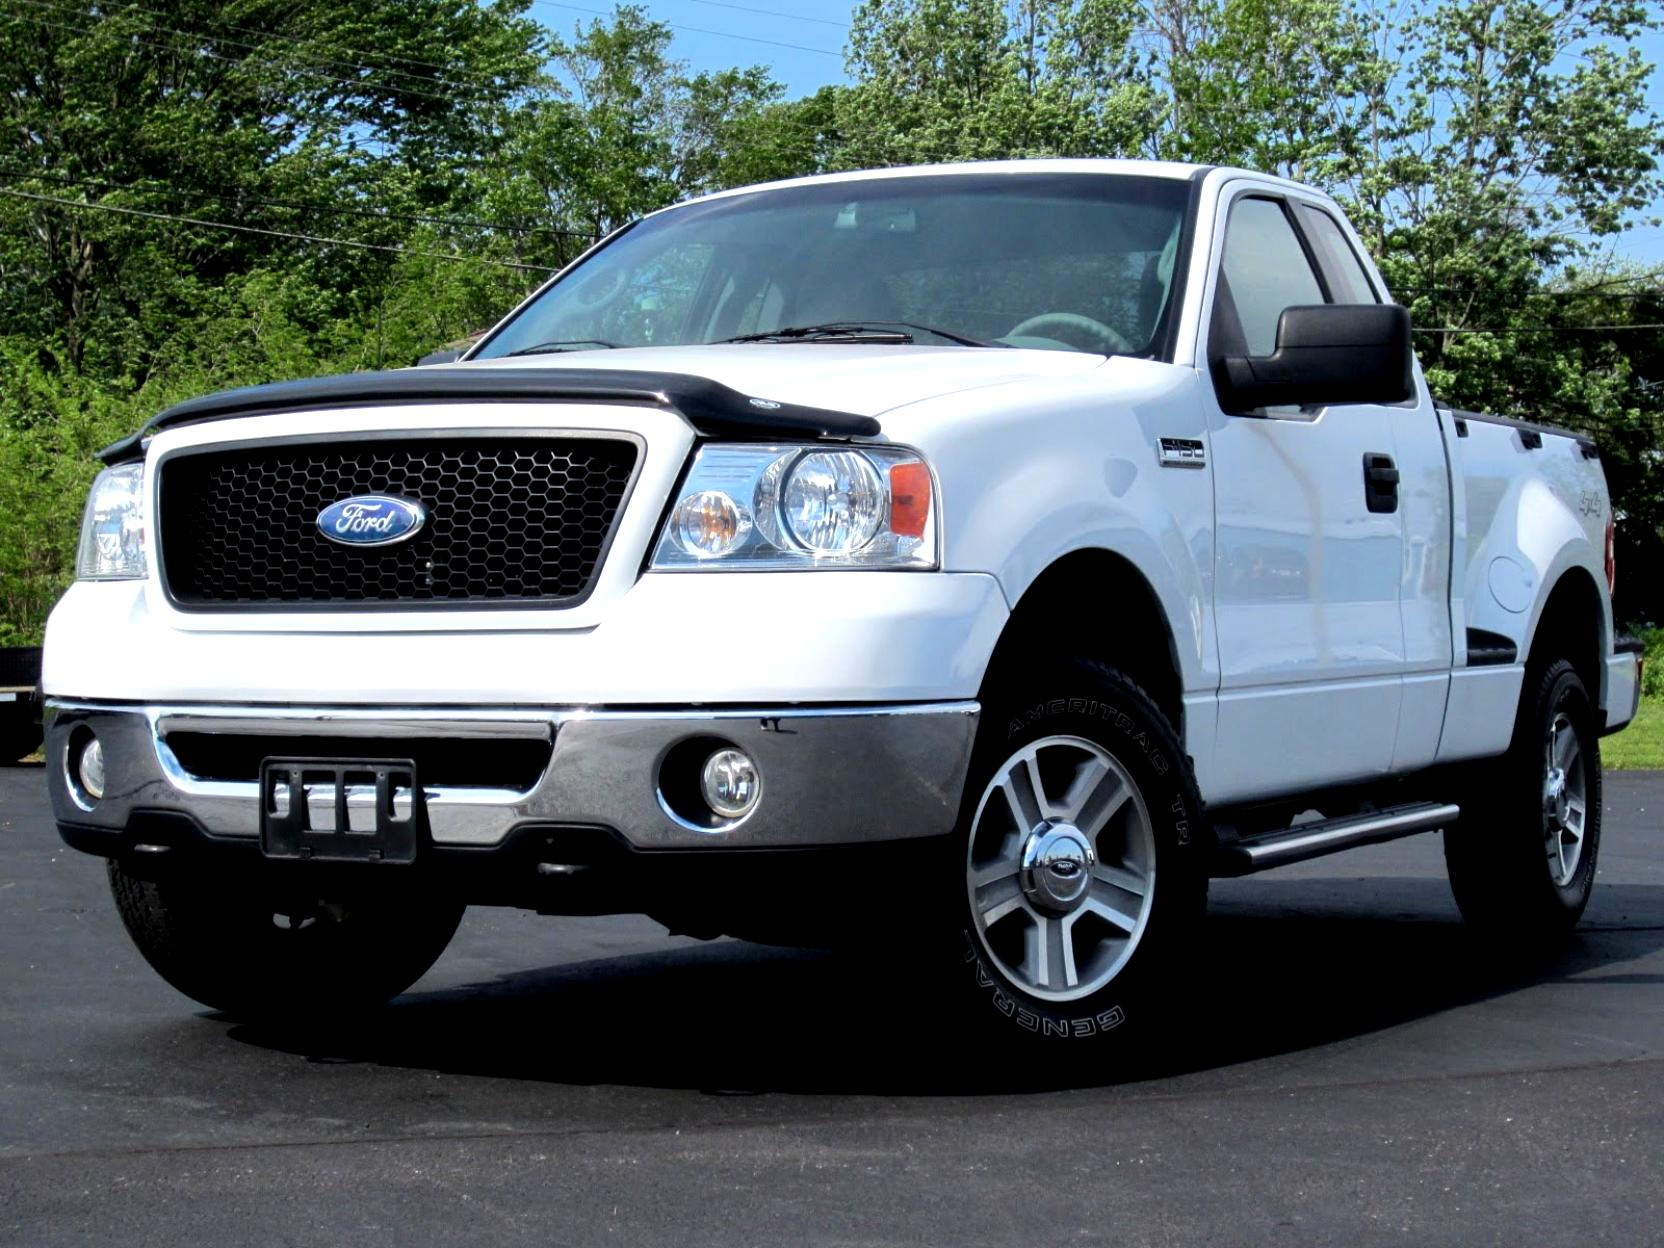 Ford F-150 Regular Cab 2004 #11